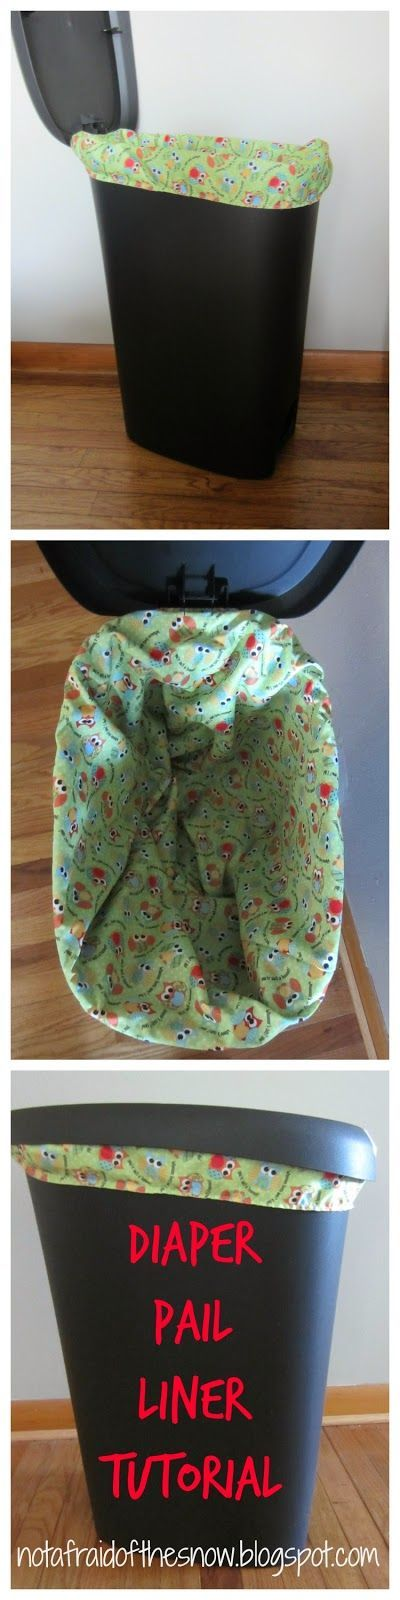 DIY Cloth Diaper Pail Liner Tutorial  Just 3 straight lines!